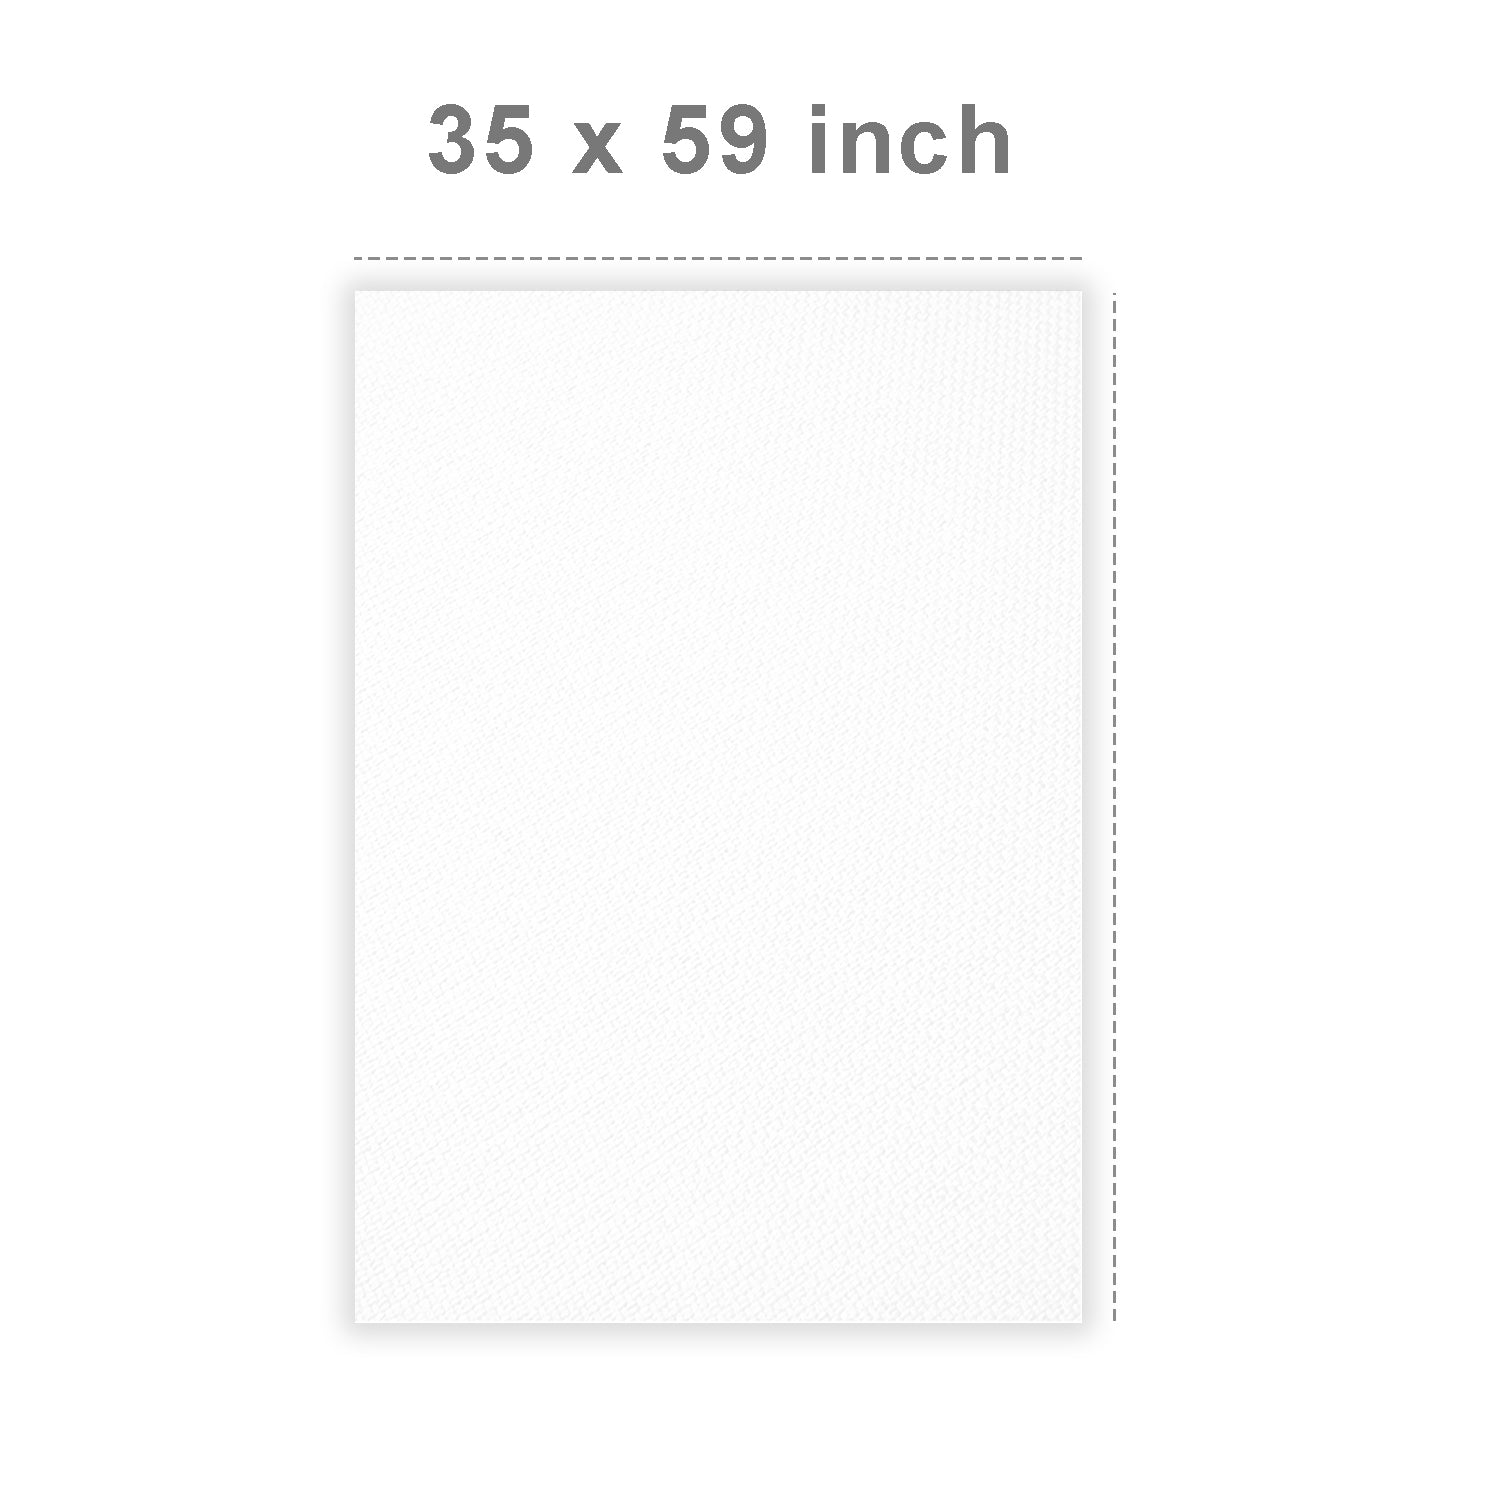 Loadstone Studio 35 Inch x 59 Inch (1.8M x 1.4M) Seamless White Diffusion Fabric, DIY Softbox Lighting Tents, Soft Nylon Silk for Professional Photography Lighting, WMLS4612